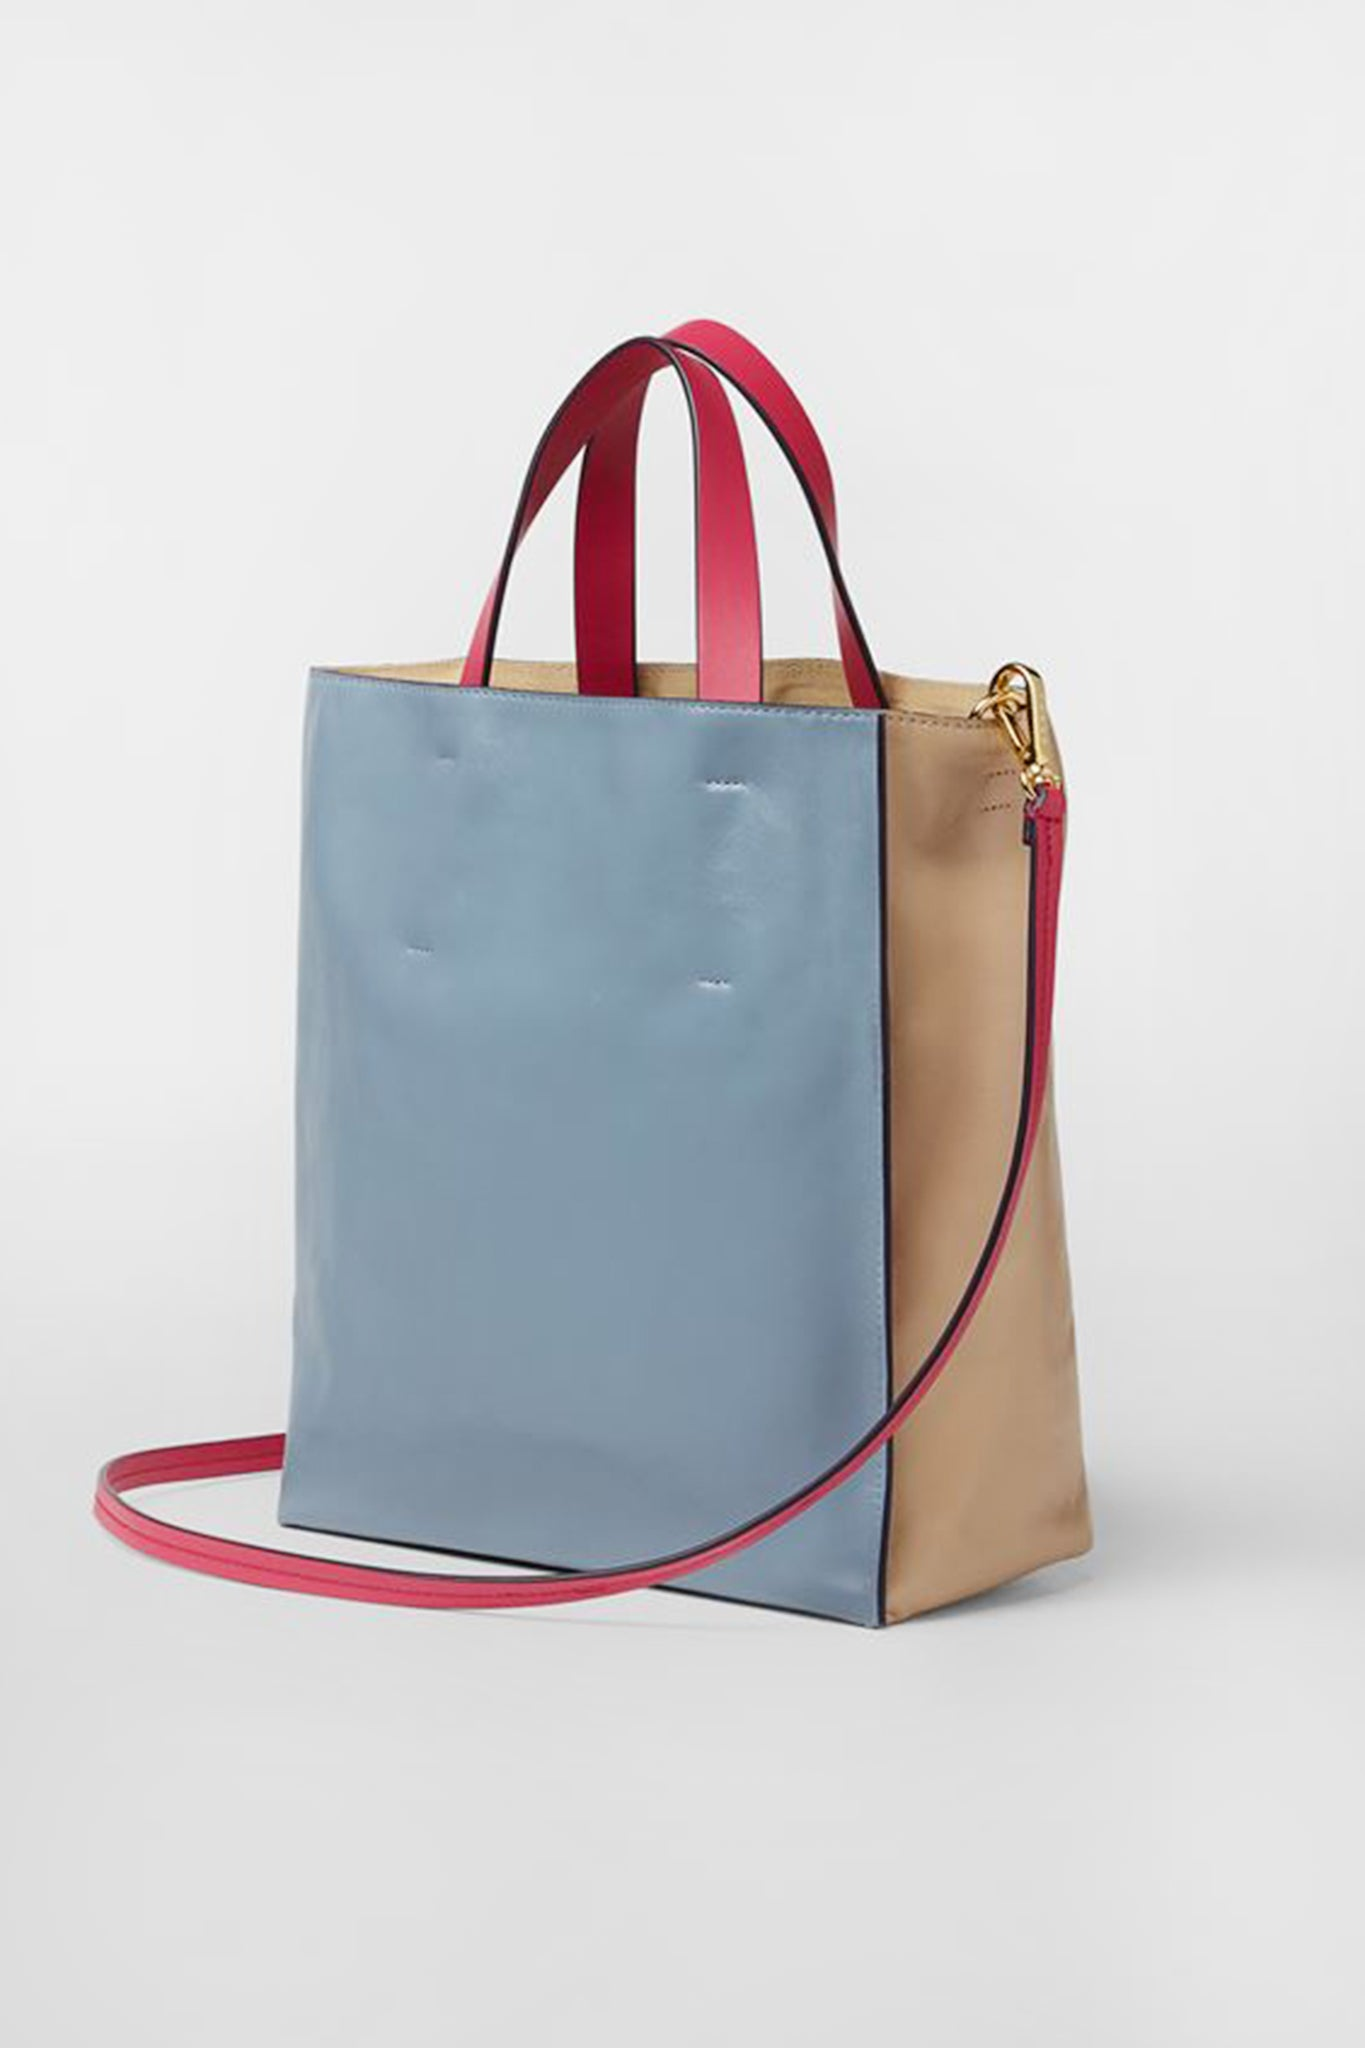 MARNI - small museo soft bag, beige and pale blue